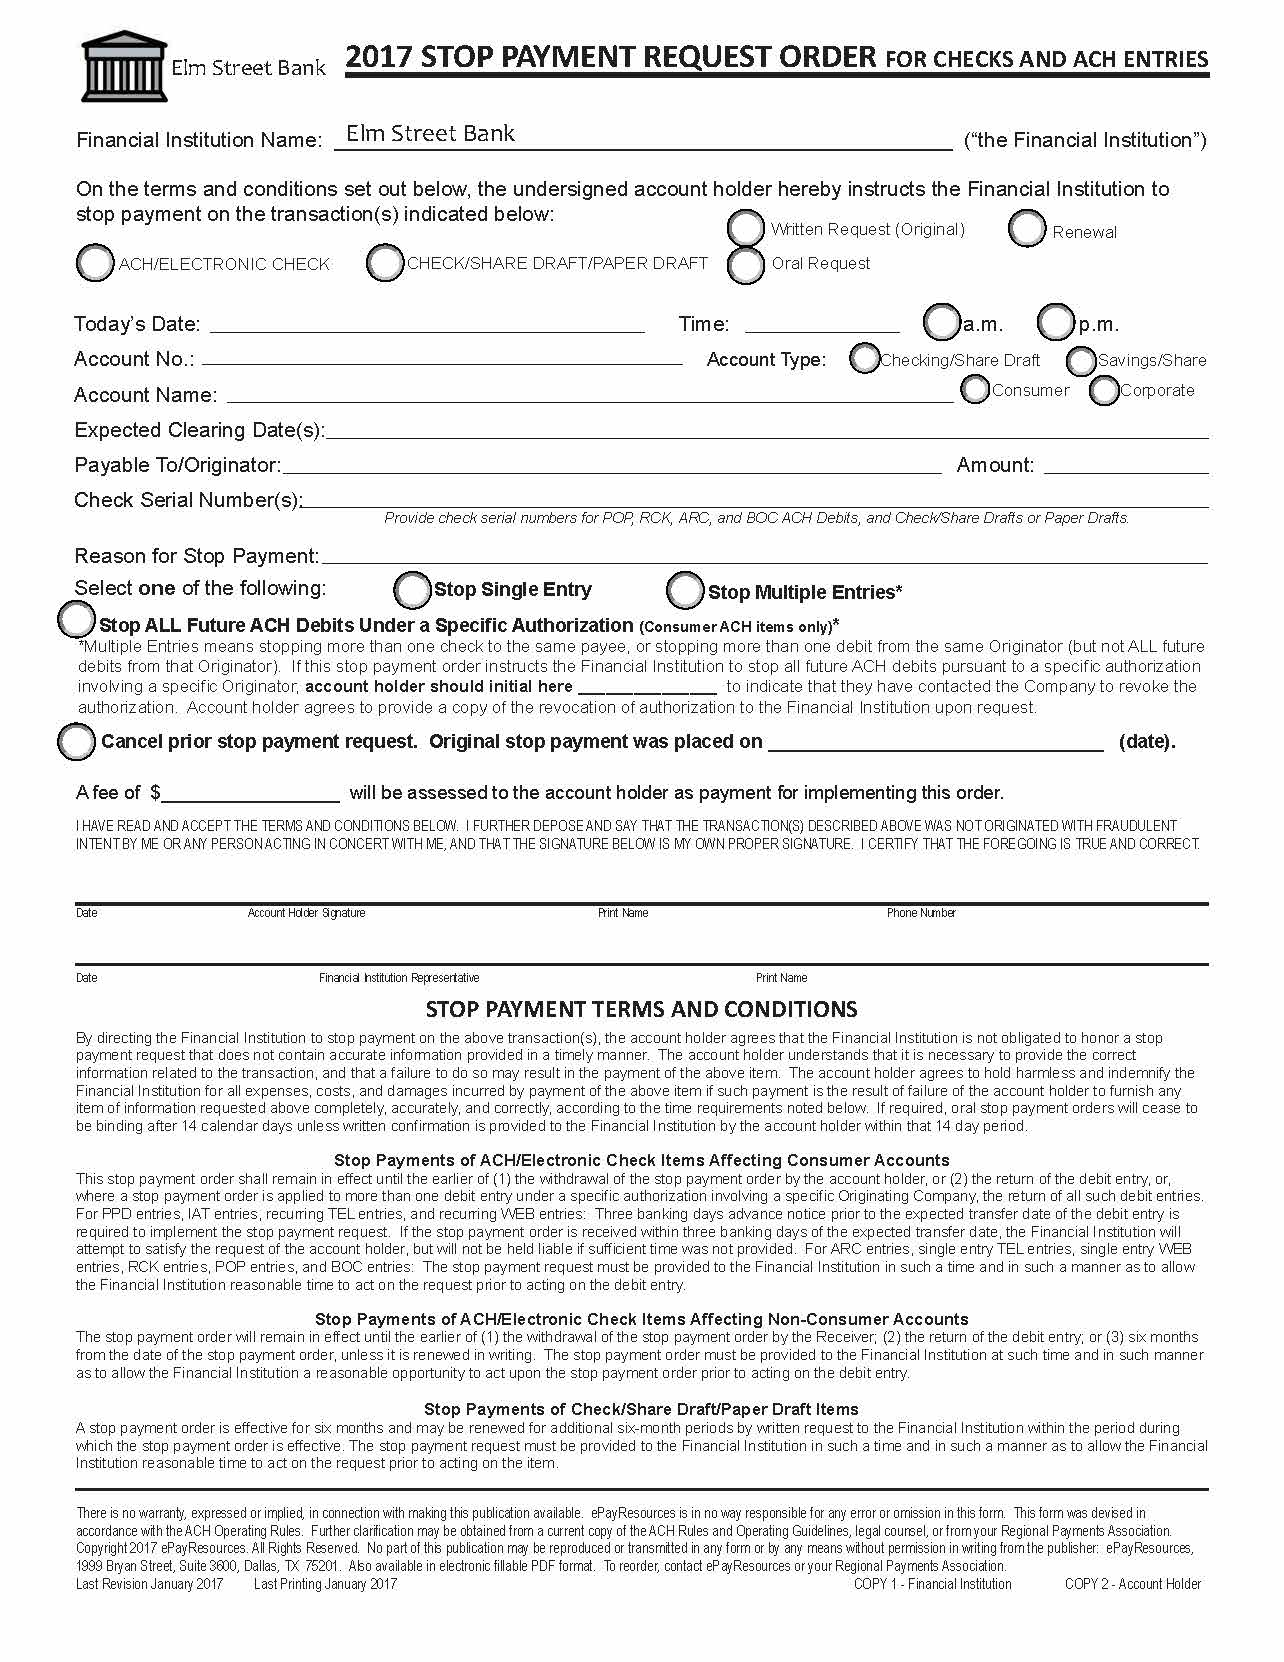 Item Detail - Customized Electronic Stop Payment Request Form